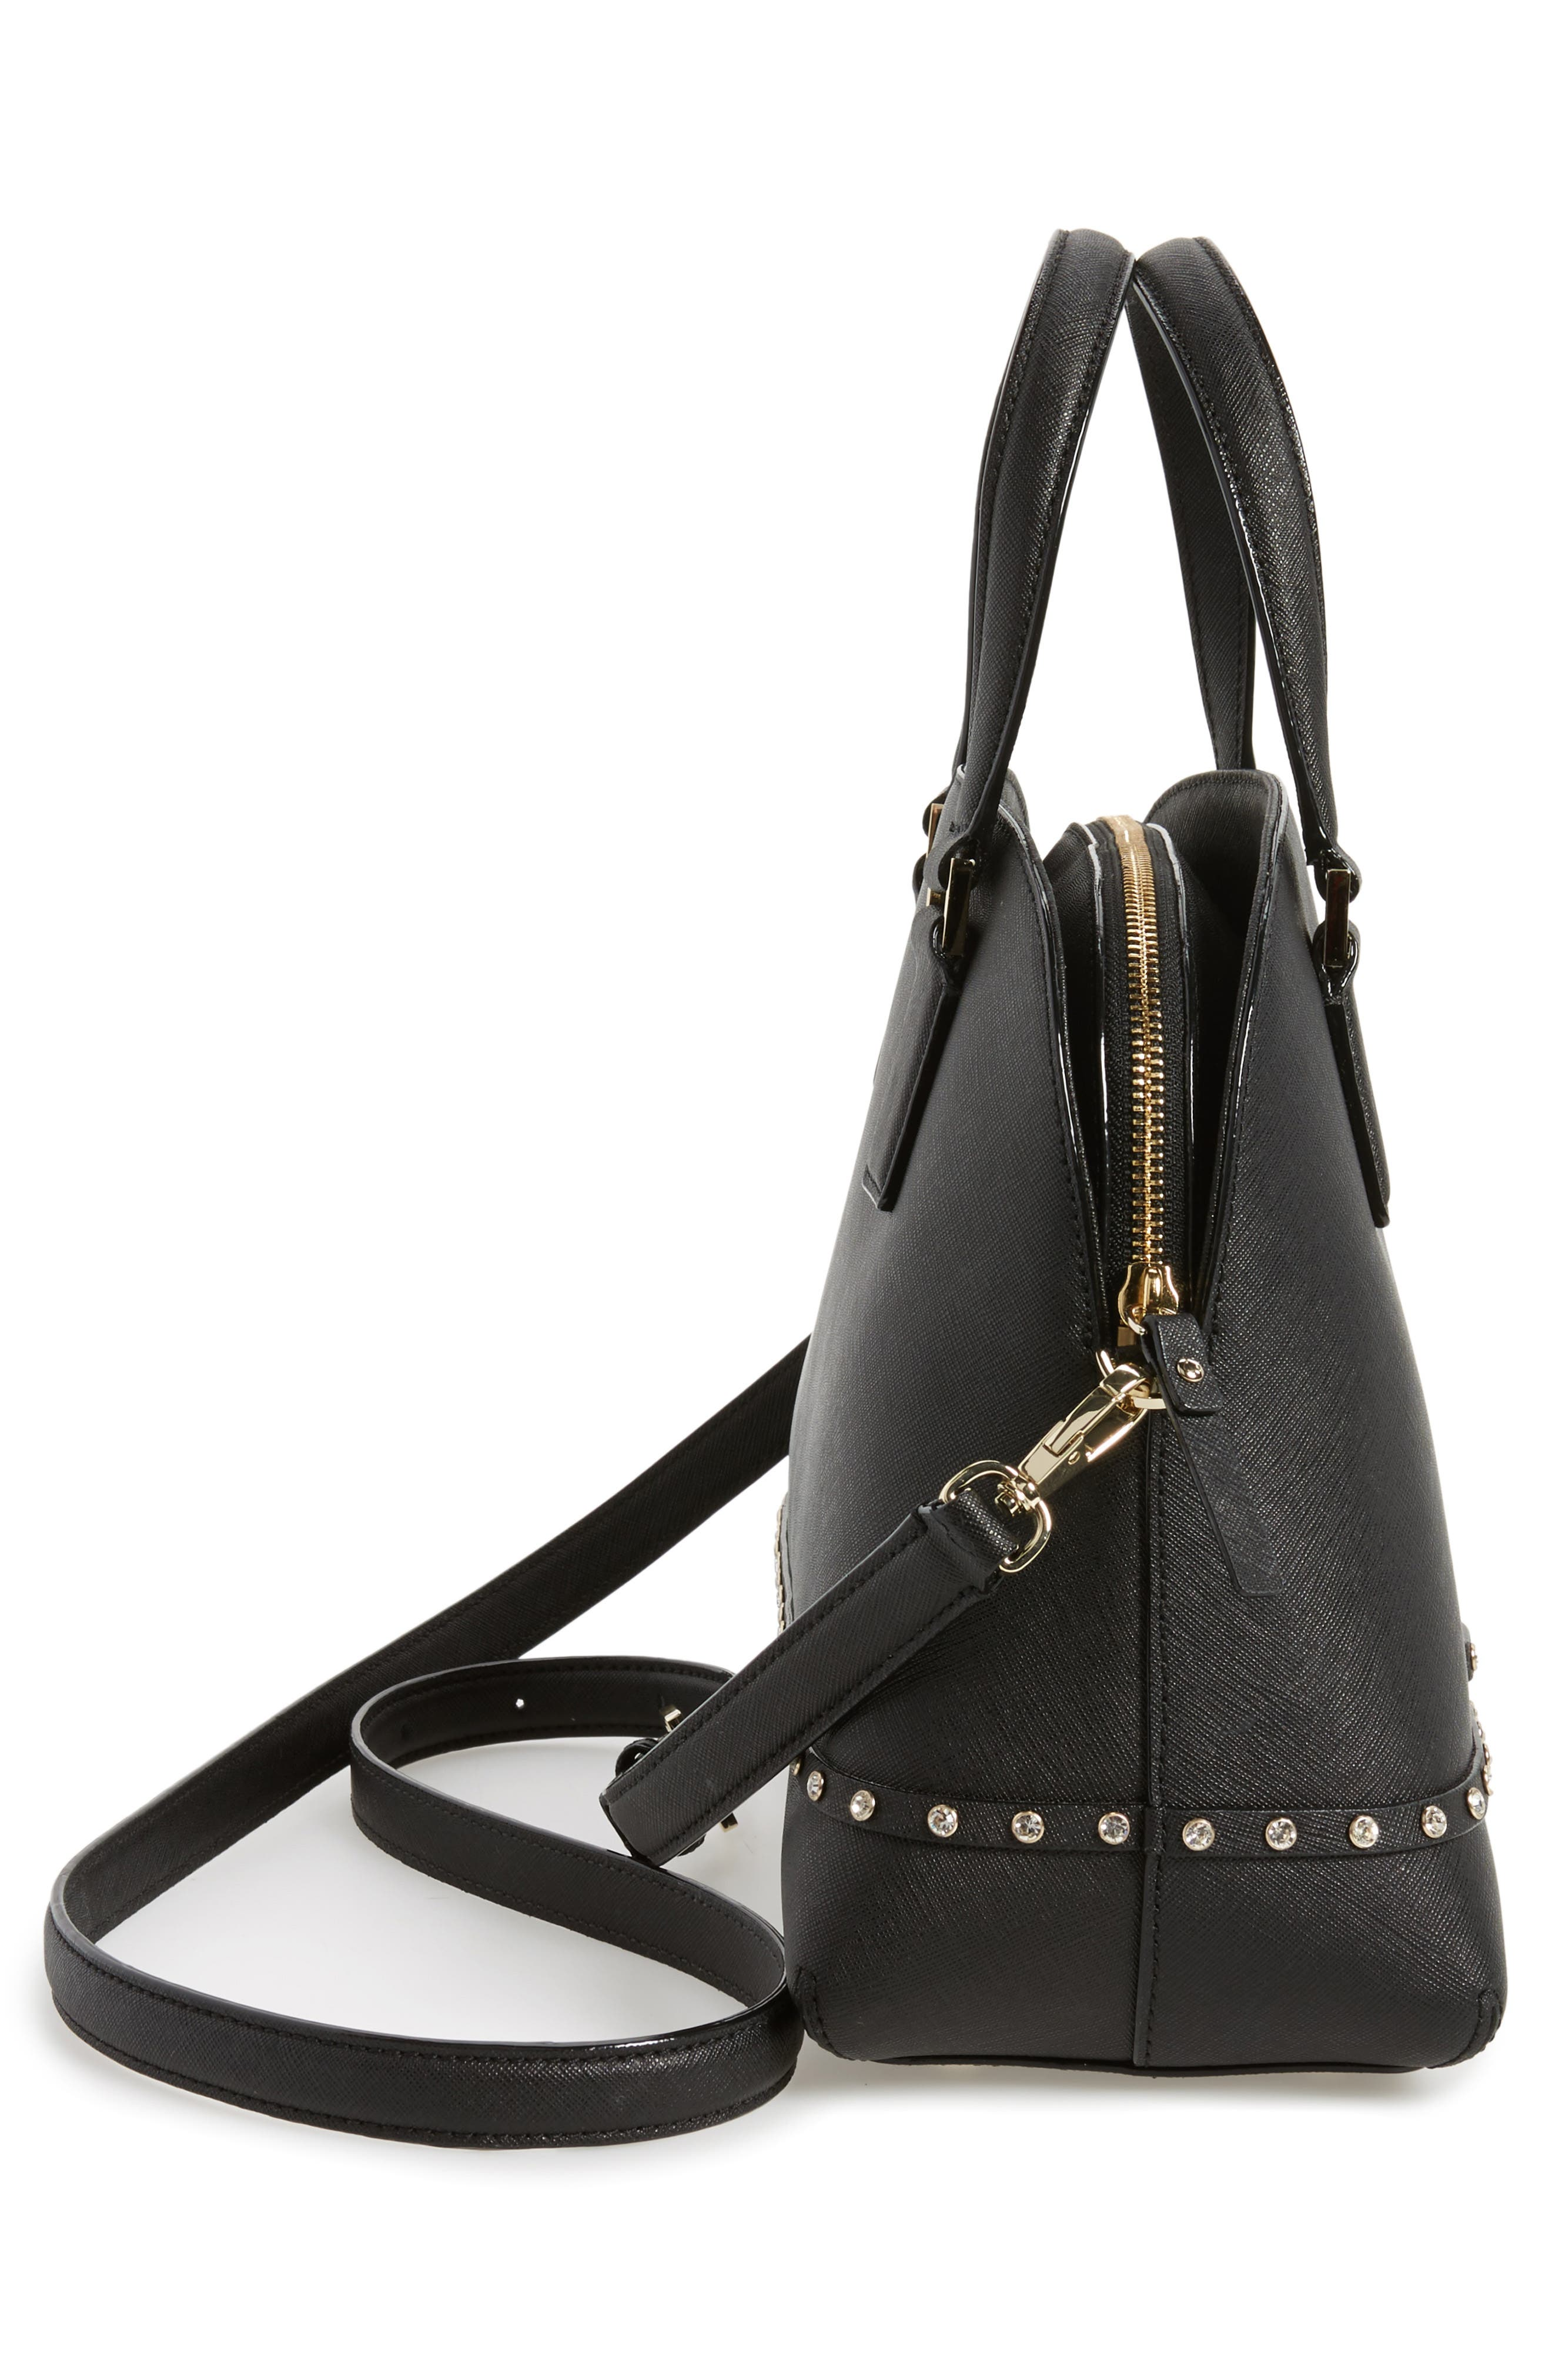 cameron street - jeweled lottie leather satchel,                             Alternate thumbnail 5, color,                             001